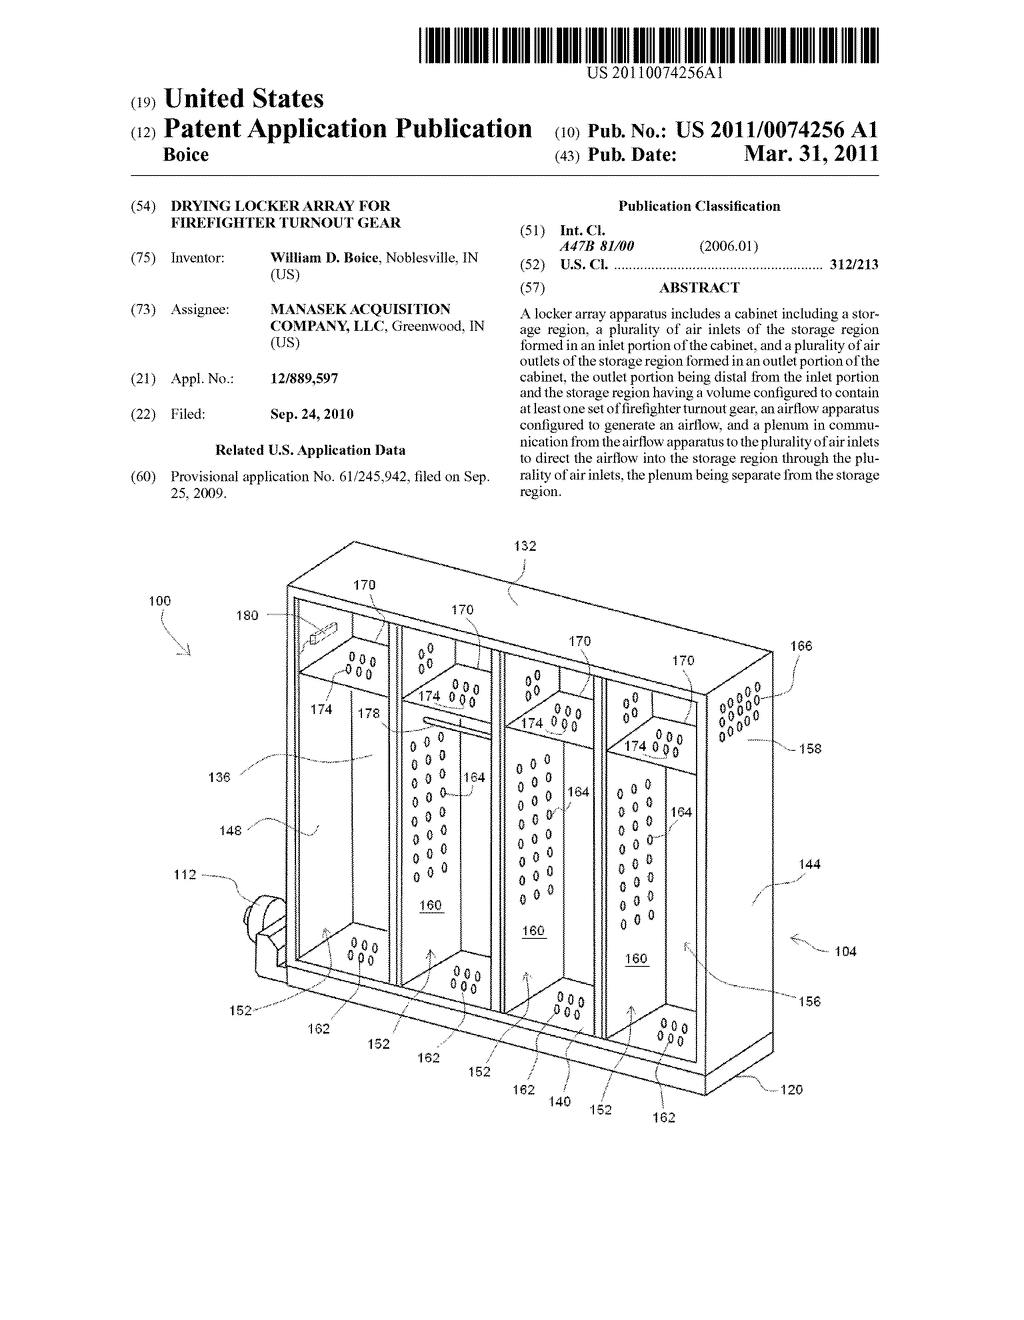 hight resolution of drying locker array for firefighter turnout gear diagram schematic and image 01